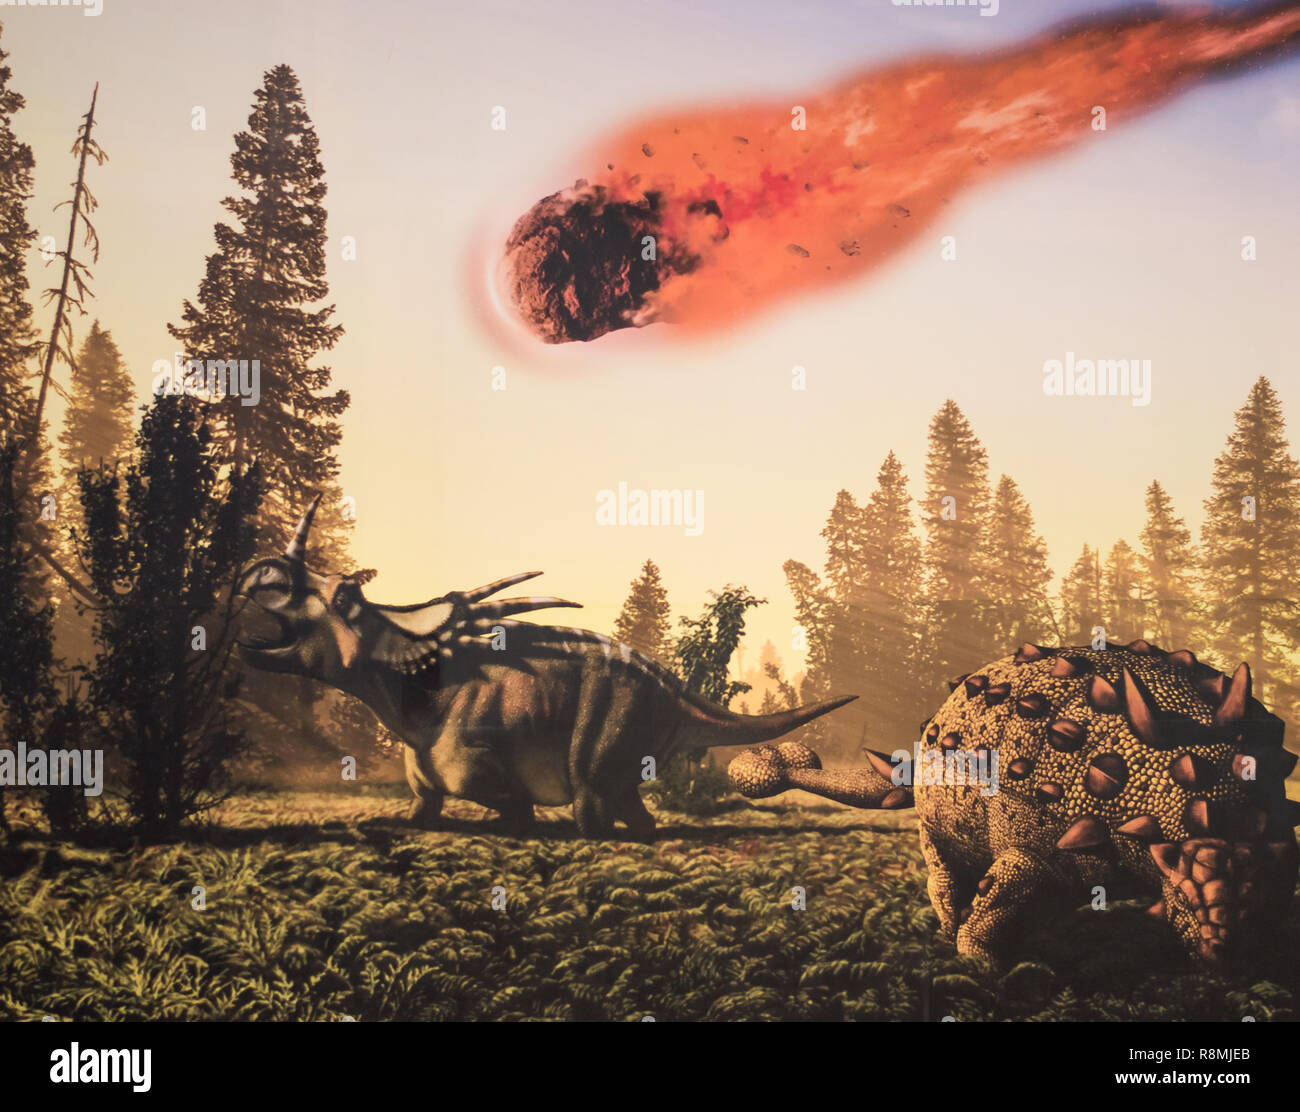 Mural at the Museo de Ciencias del Crater in Yucatan, depicting the asteroid which impacted into Chicxulub, leading to the extinction of dinosaurs. - Stock Image